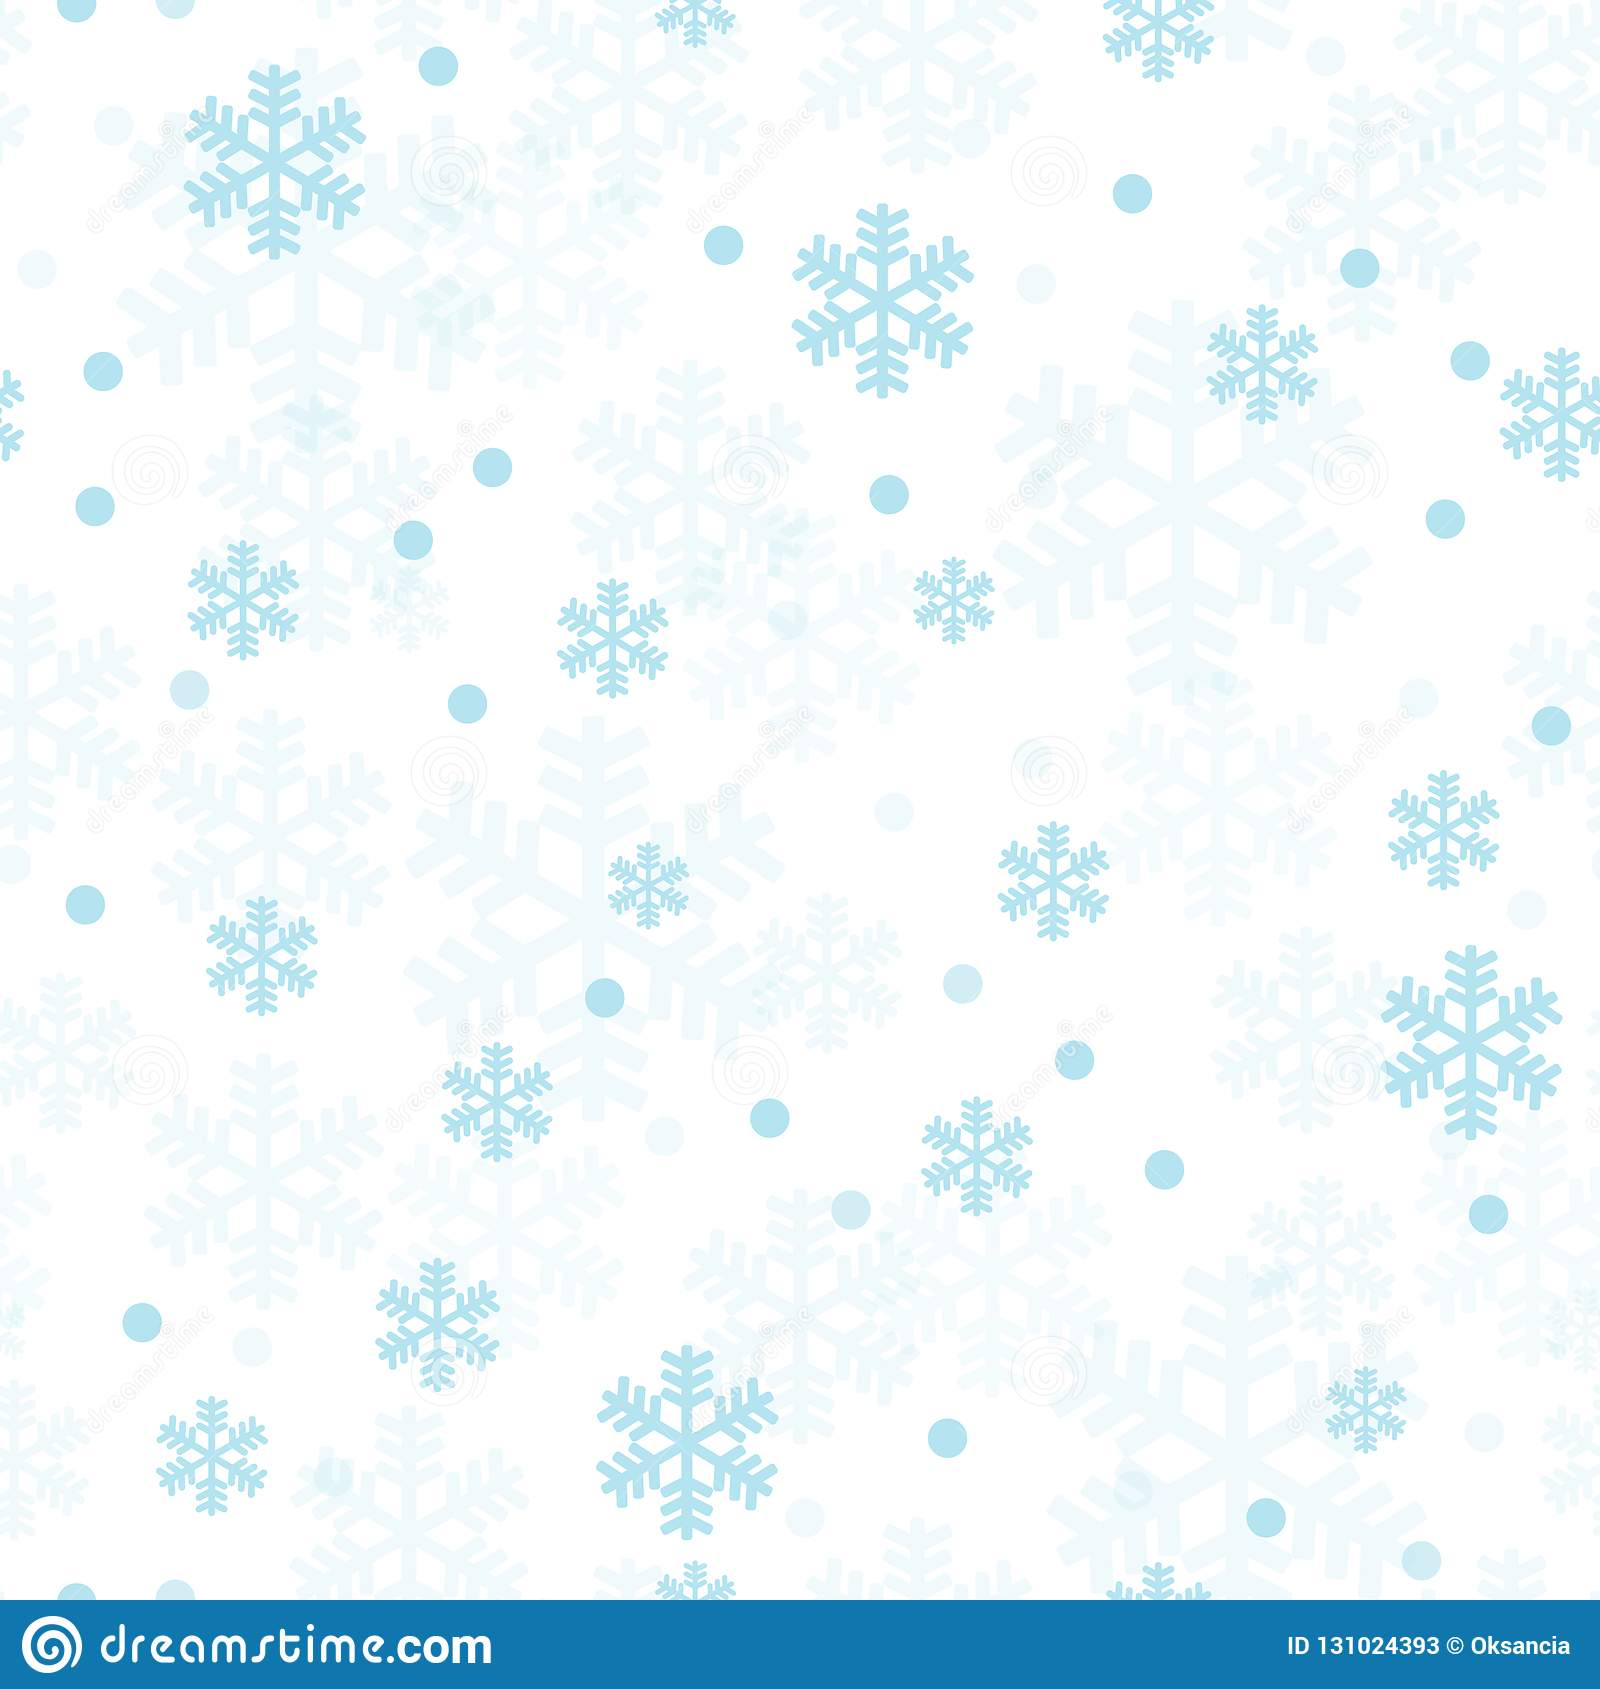 Pastel Blue Christmas Snowflakes Seamless Pattern Stock Vector Illustration Of Frost Pattern 131024393 Light blue aesthetic blue aesthetic pastel bleu pastel pastel colors albums bts the garden of words everything is blue looks cool shades of blue. https www dreamstime com pastel blue christmas snowflakes seamless pattern great winter holidays wallpaper backgrounds invitations packaging design image131024393